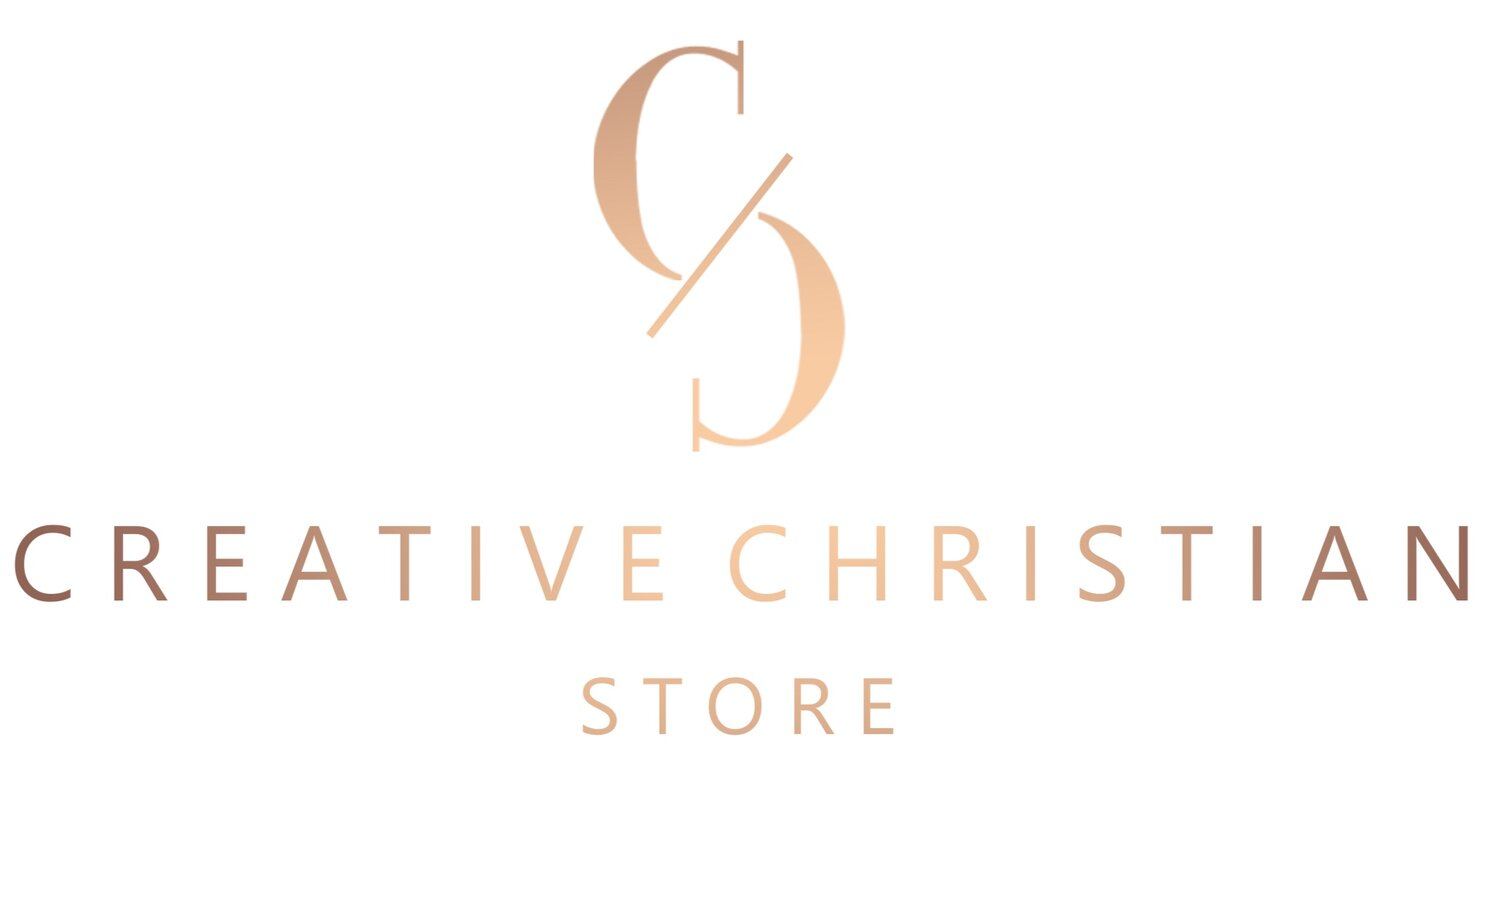 Creative Christian Store